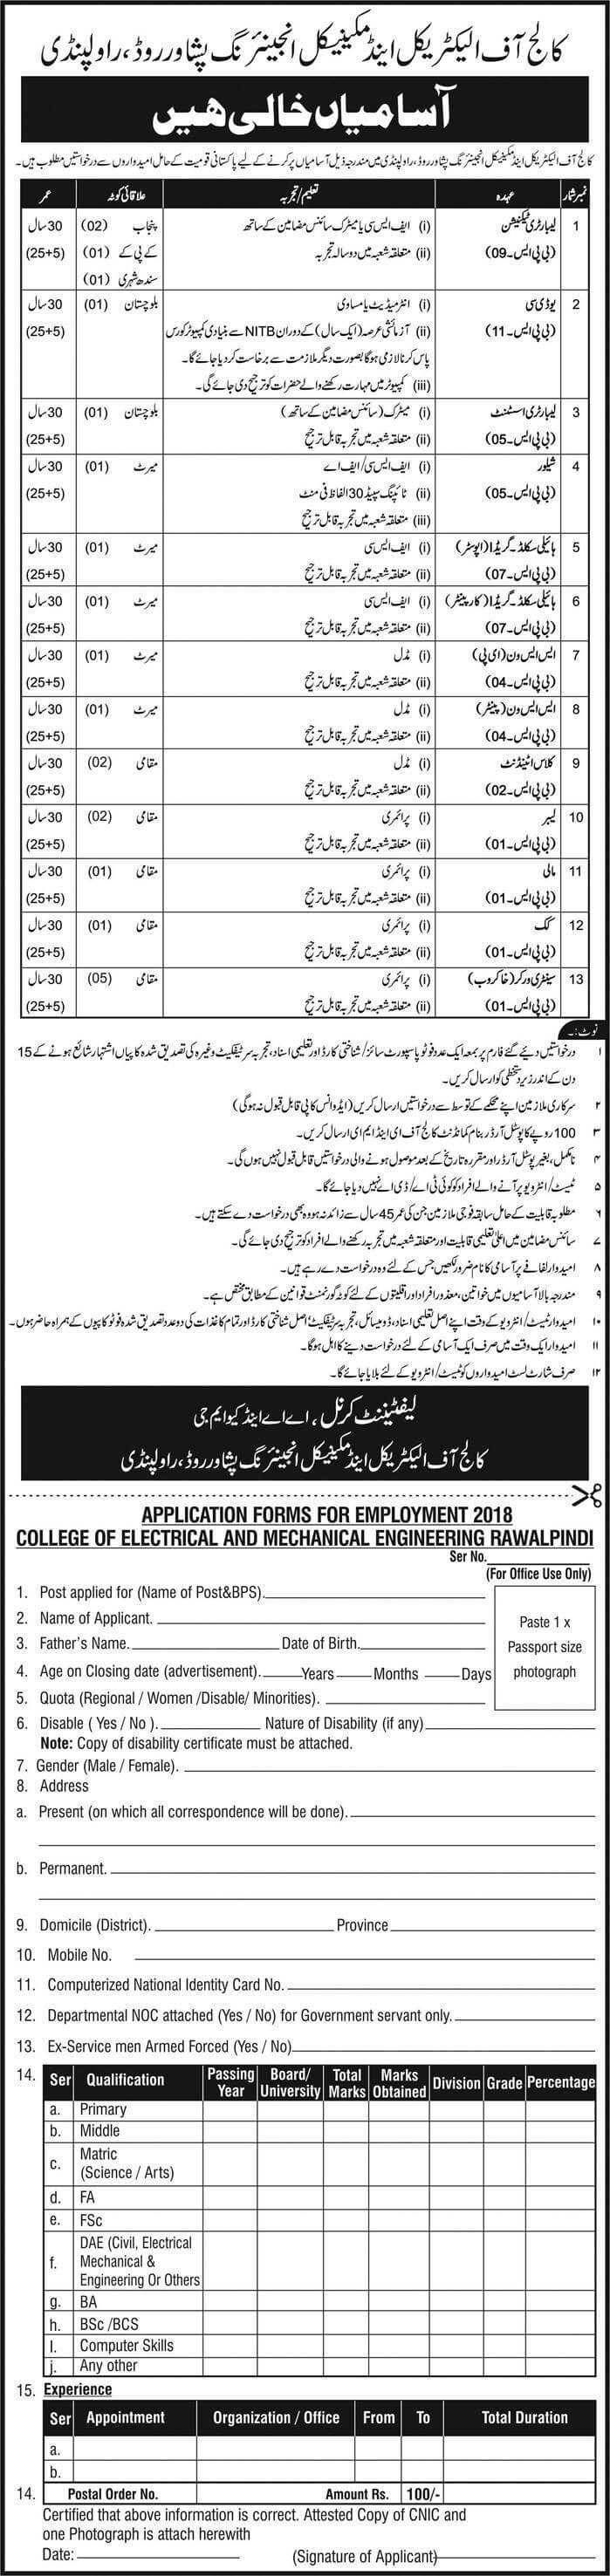 College Of Electrical & Mechanical Engineering Peshawar Road Rawalpindi Jobs 2018 Government Pakistan in All over in Pakistan on November, 2018 | Government